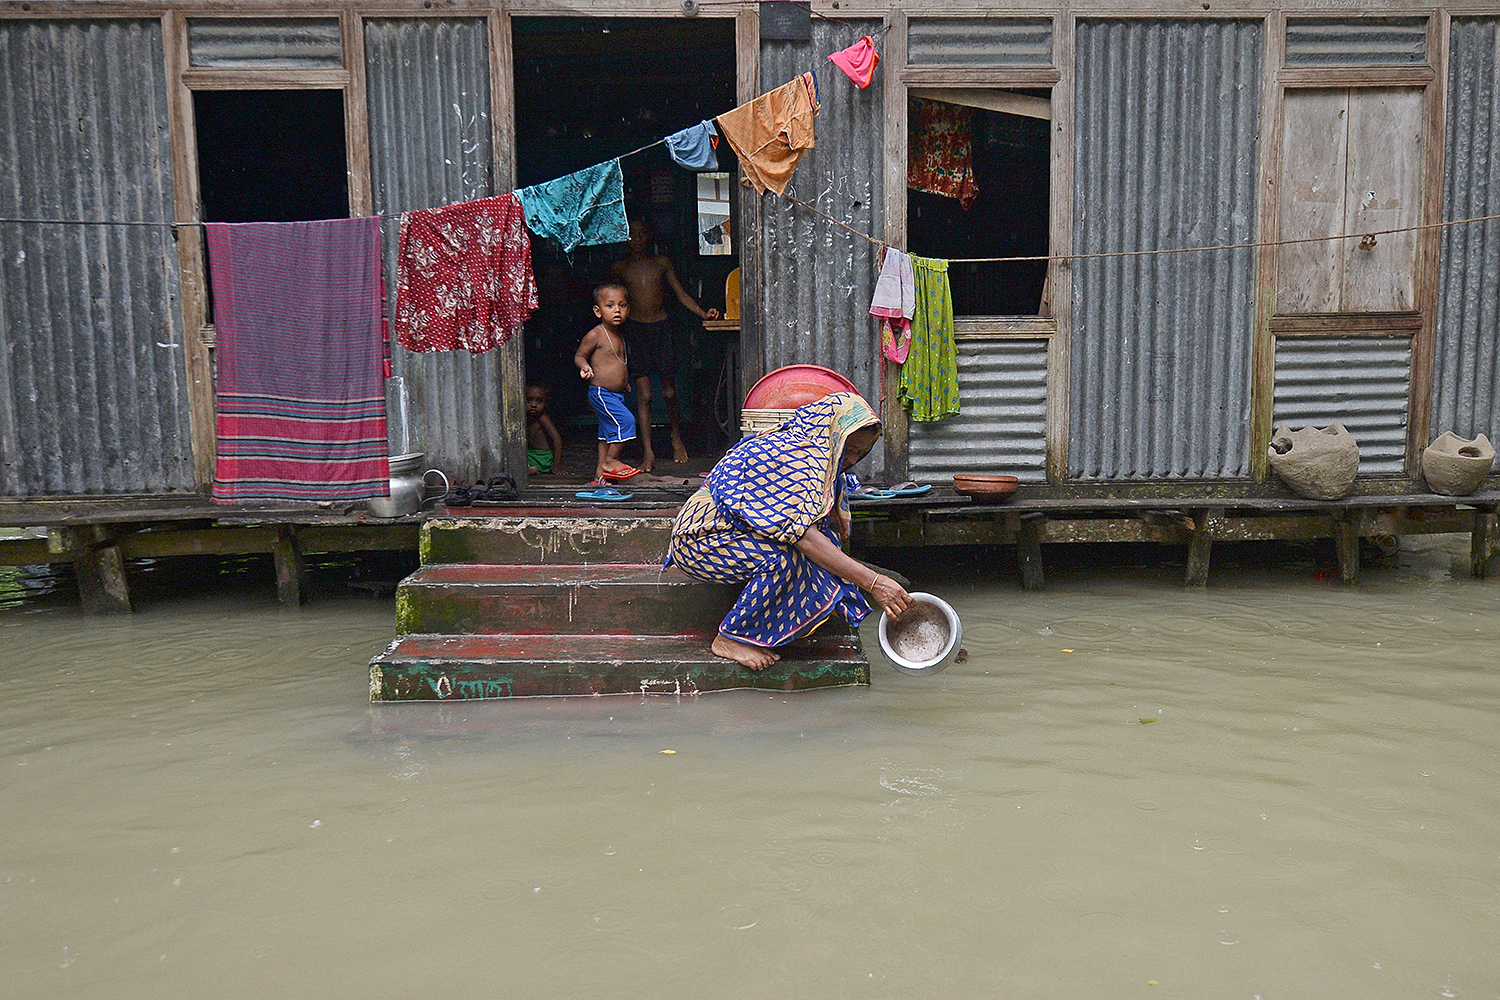 A woman washes her cooking pot in the floodwaters outside her house in Sreenagar, Bangladesh, on July 20. MUNIR UZ ZAMAN/AFP via Getty Images